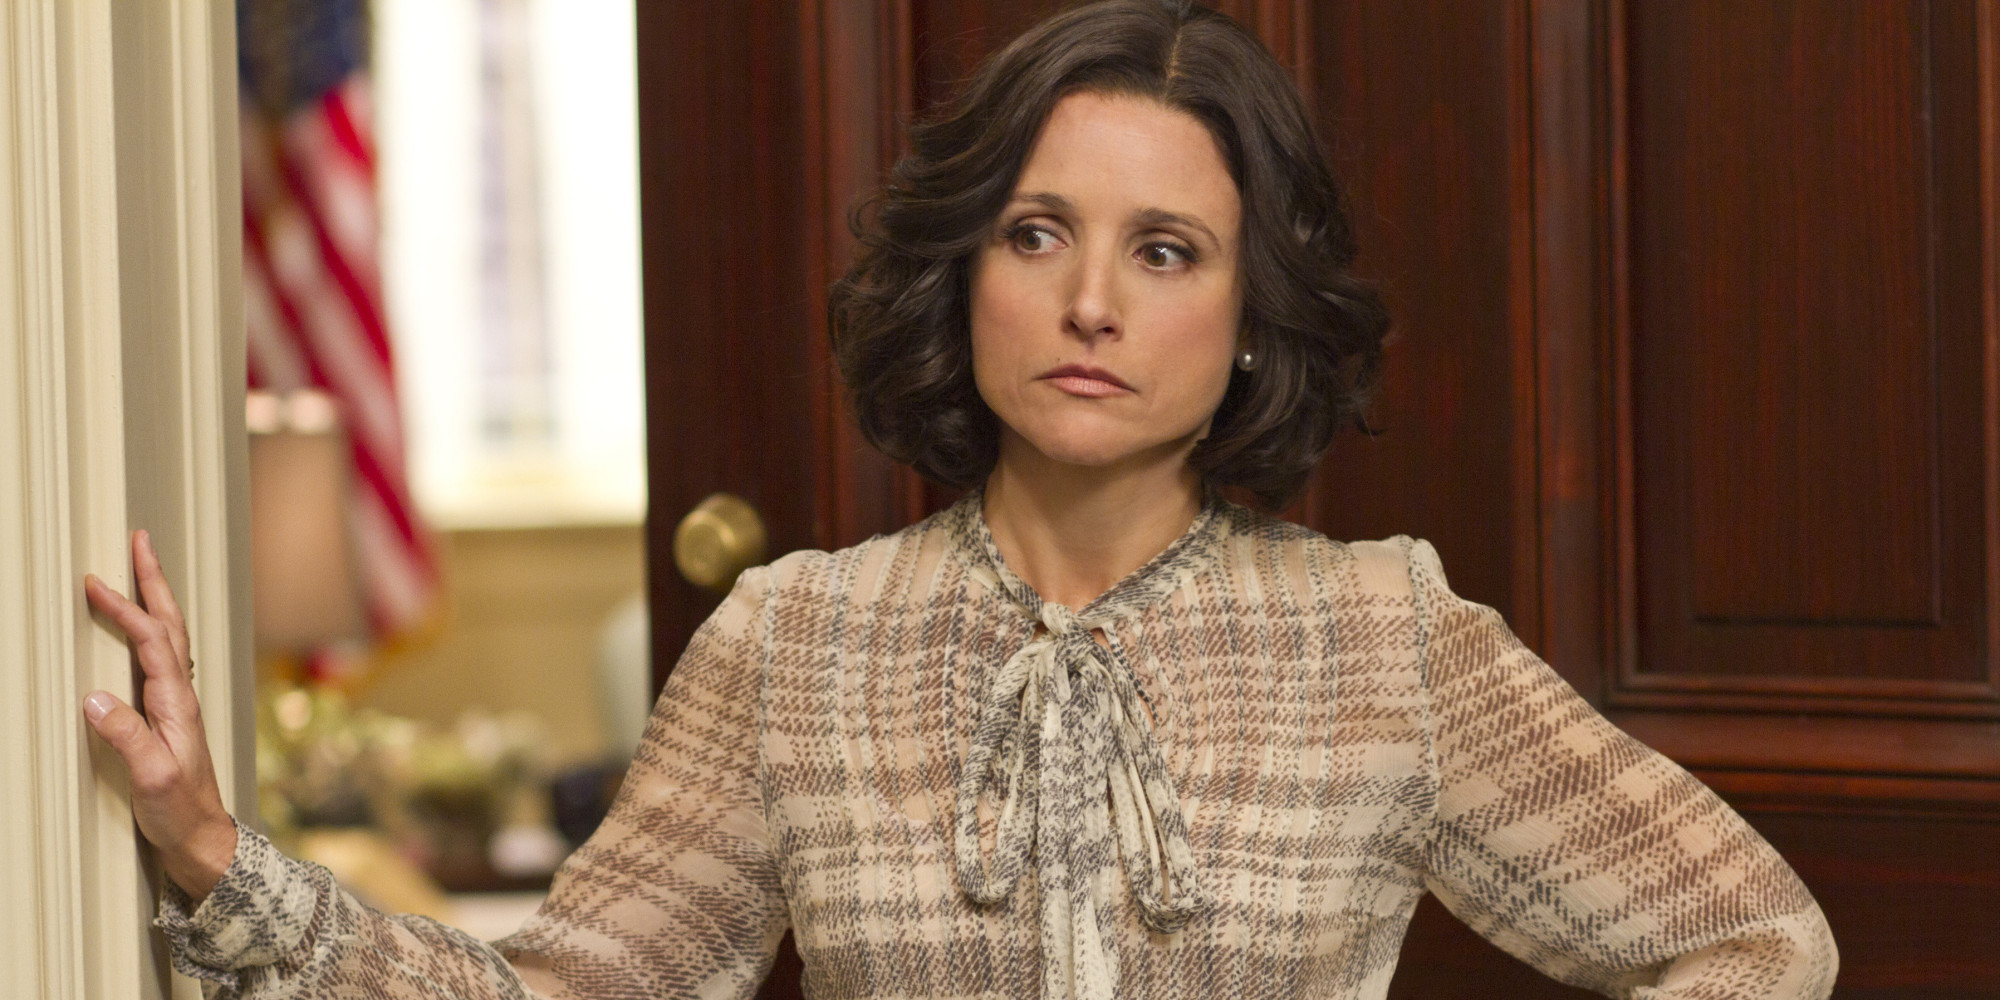 "This undated image released by HBO shows Julia Louis-Dreyfus portraying Vice President Selina Meyer in a scene from ""Veep."" Louis-Dreyfus was nominated for a Golden Globe for best actress in a comedy series, Thursday, Dec. 13, 2012, for her role in the series.  The 70th annual Golden Globe Awards will be held on Jan. 13.  (AP Photo/HBO, Bill Gray)"